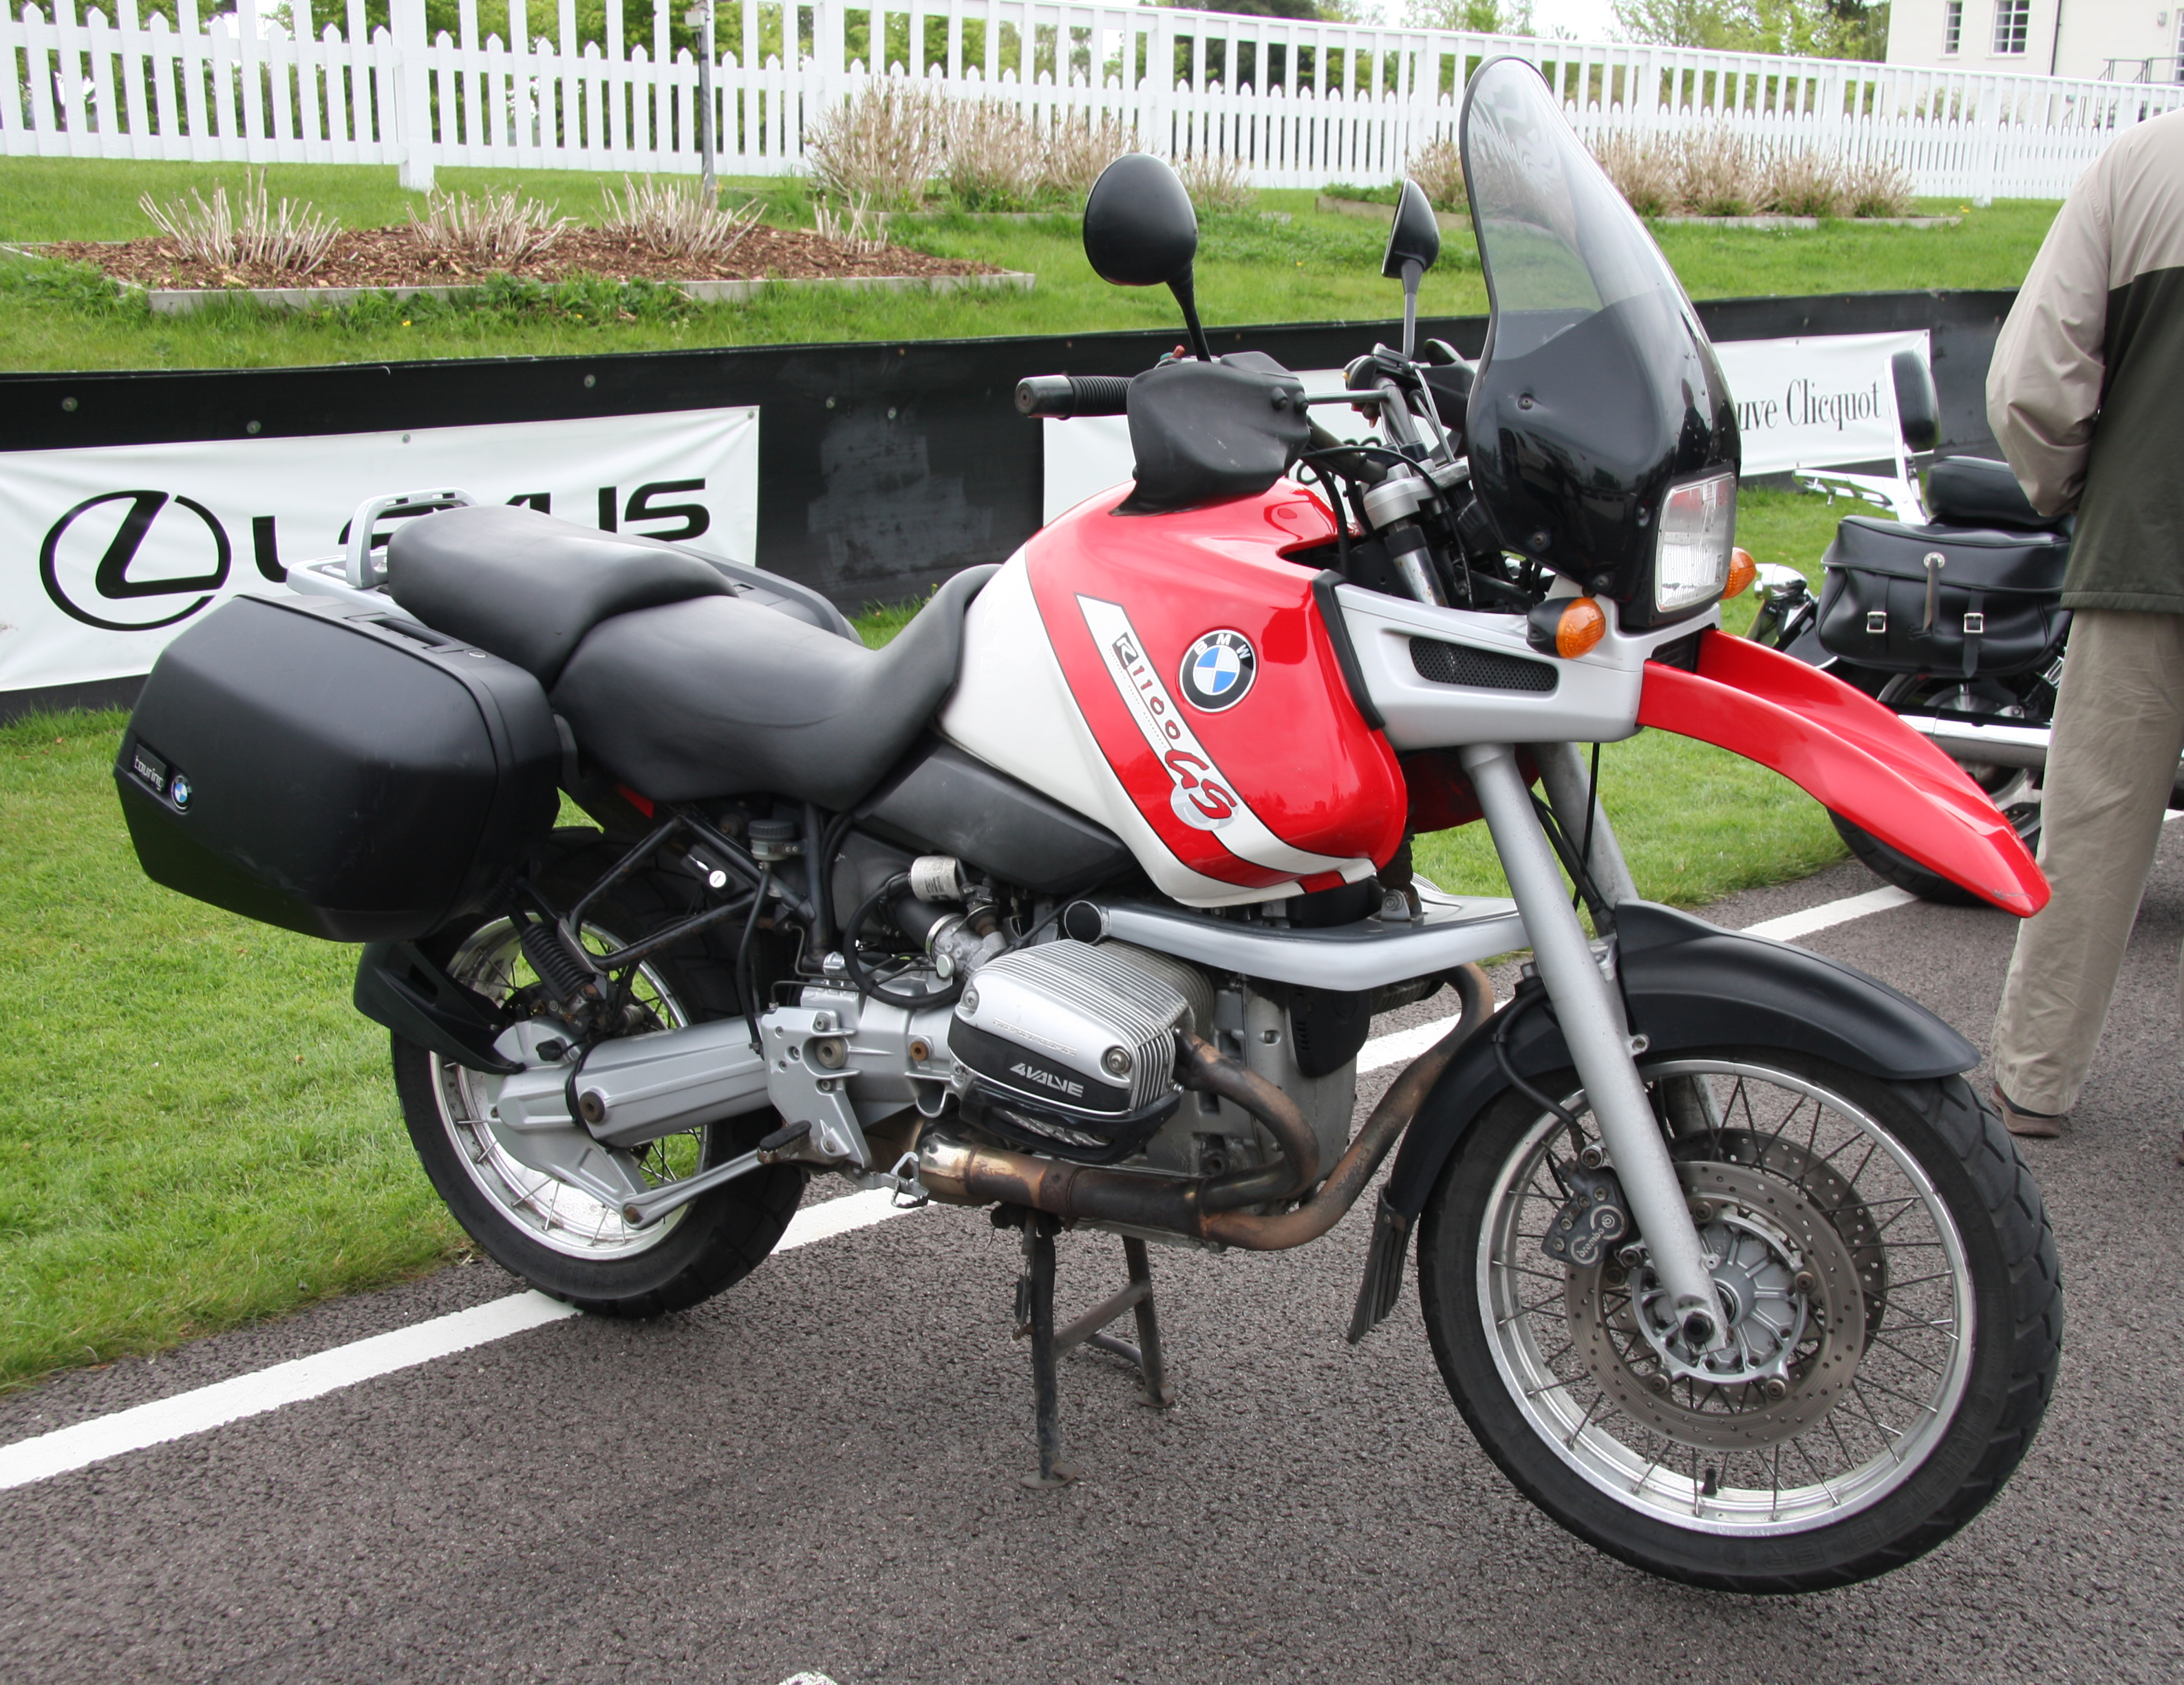 BMW R1100RS 1996 images #9918